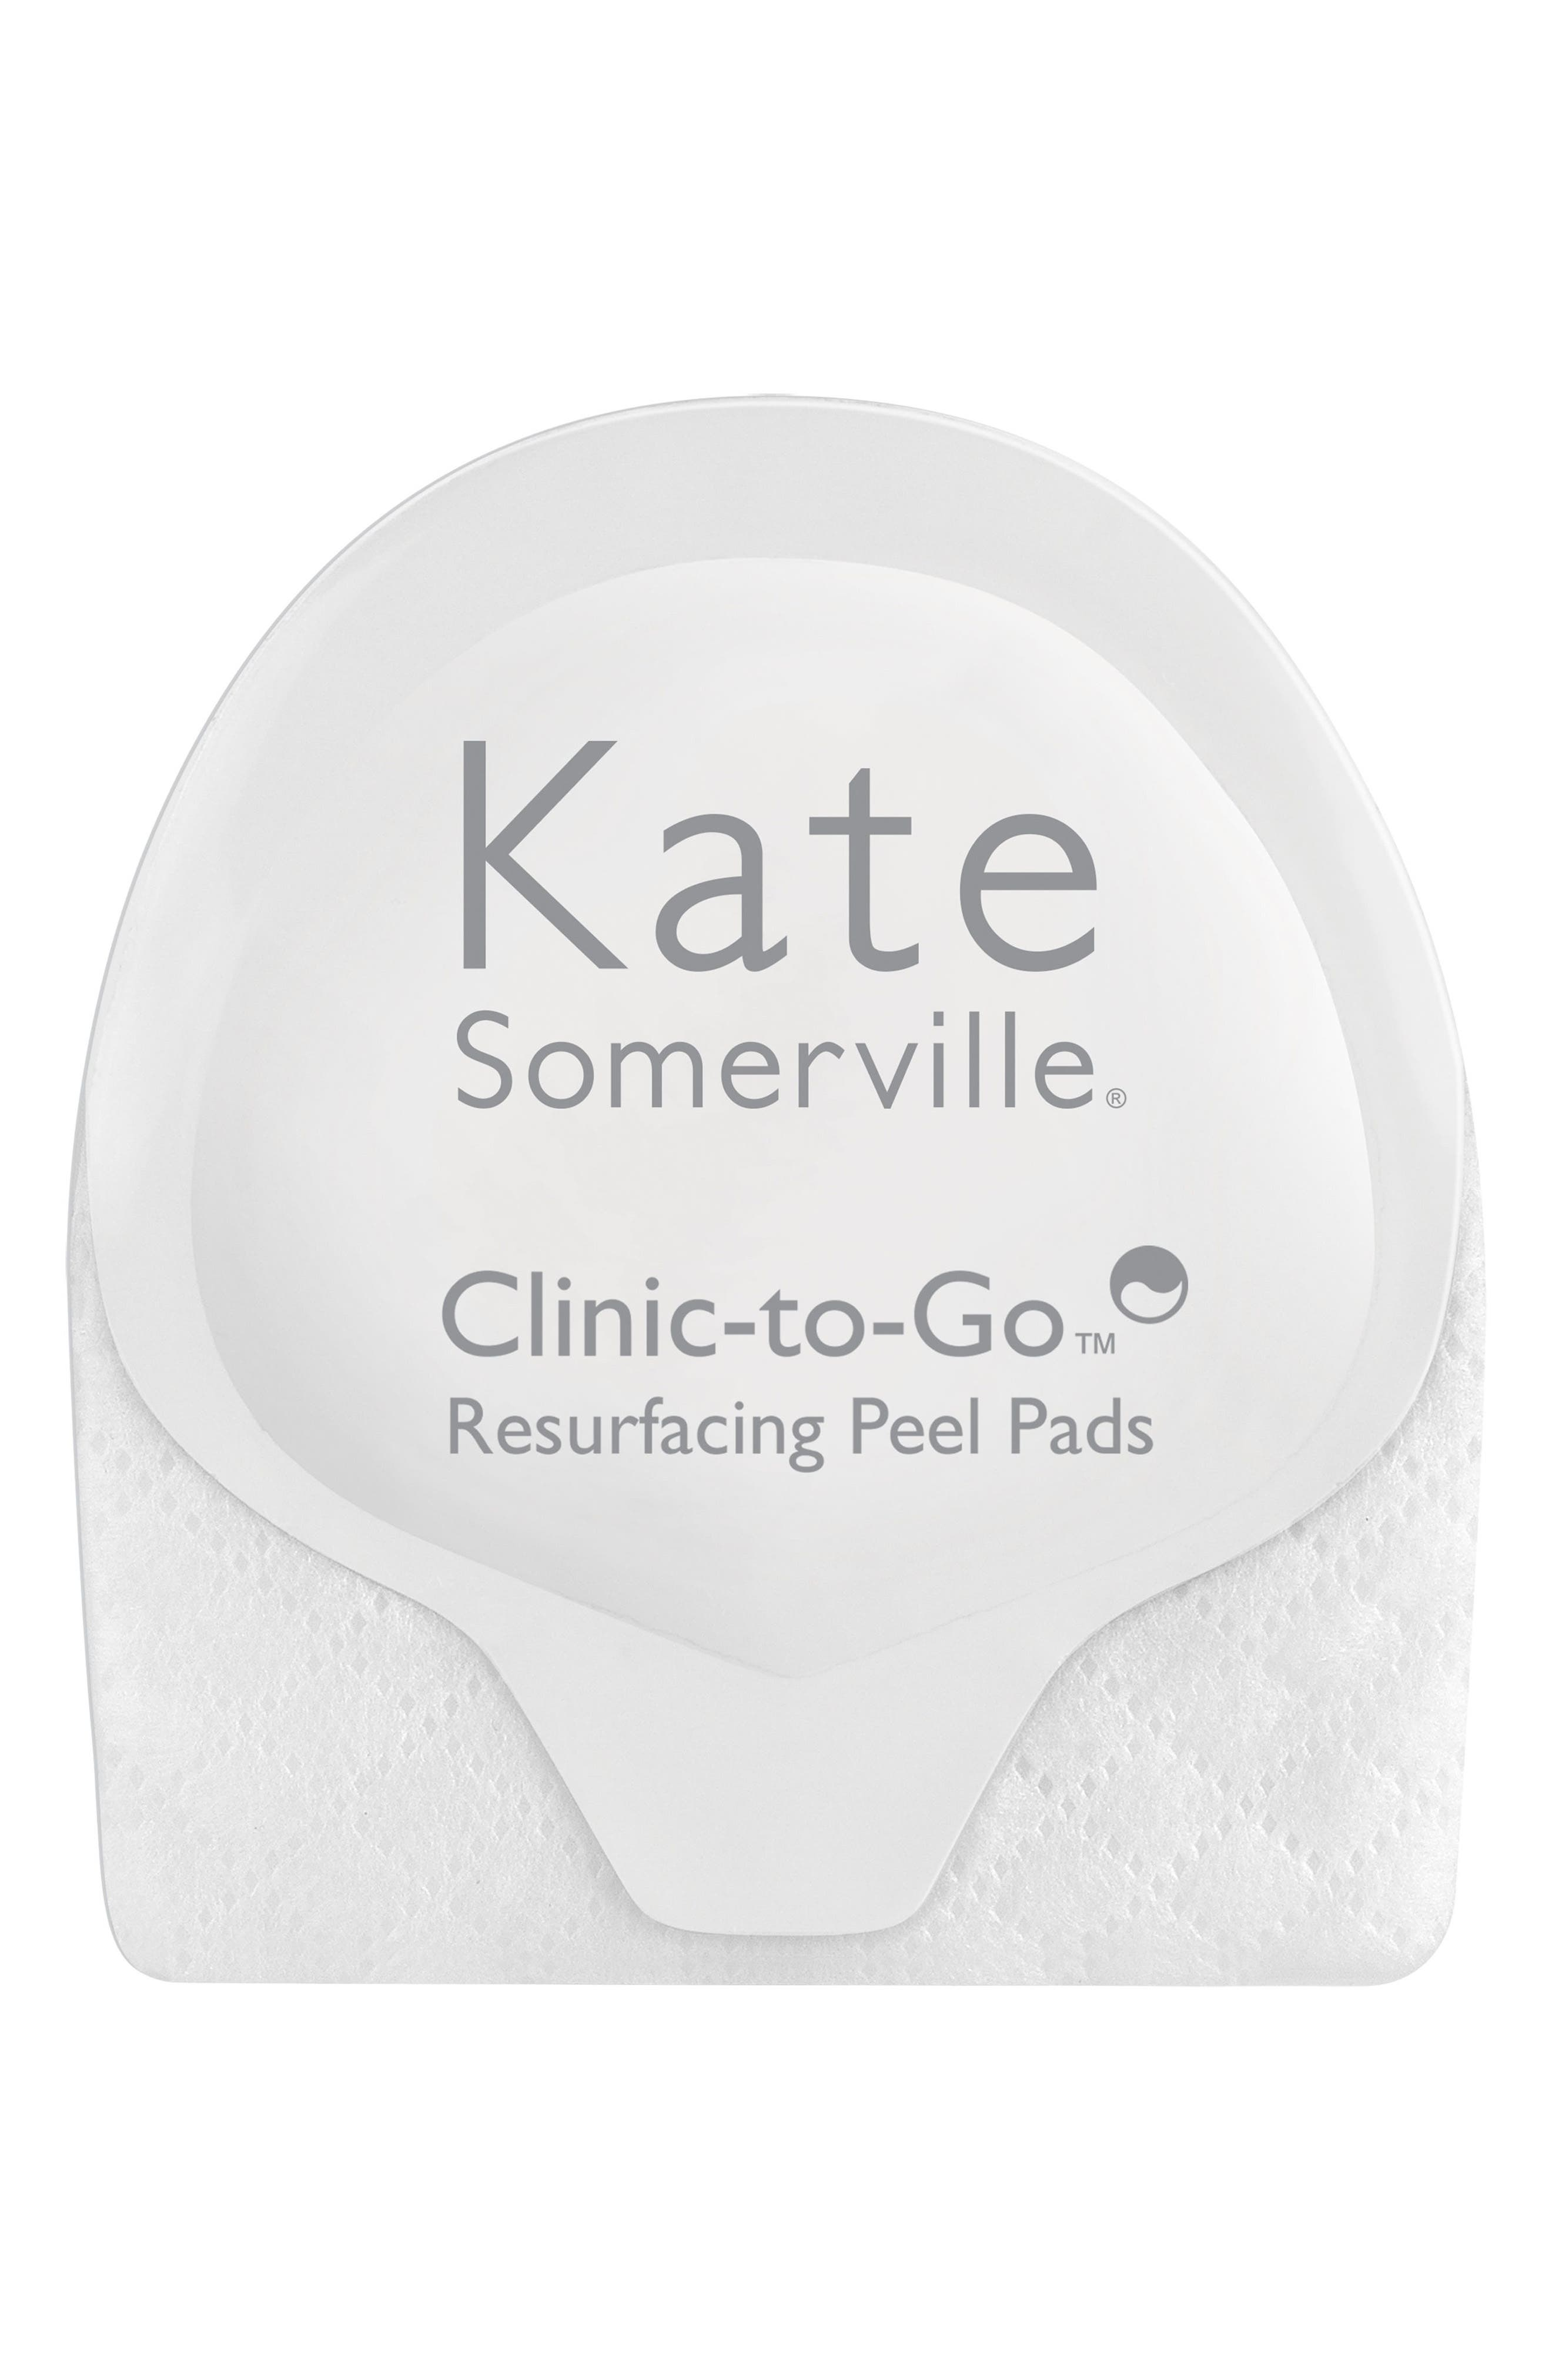 Alternate Image 1 Selected - Kate Somerville® 'Clinic-to-Go' Resurfacing Peel Pads